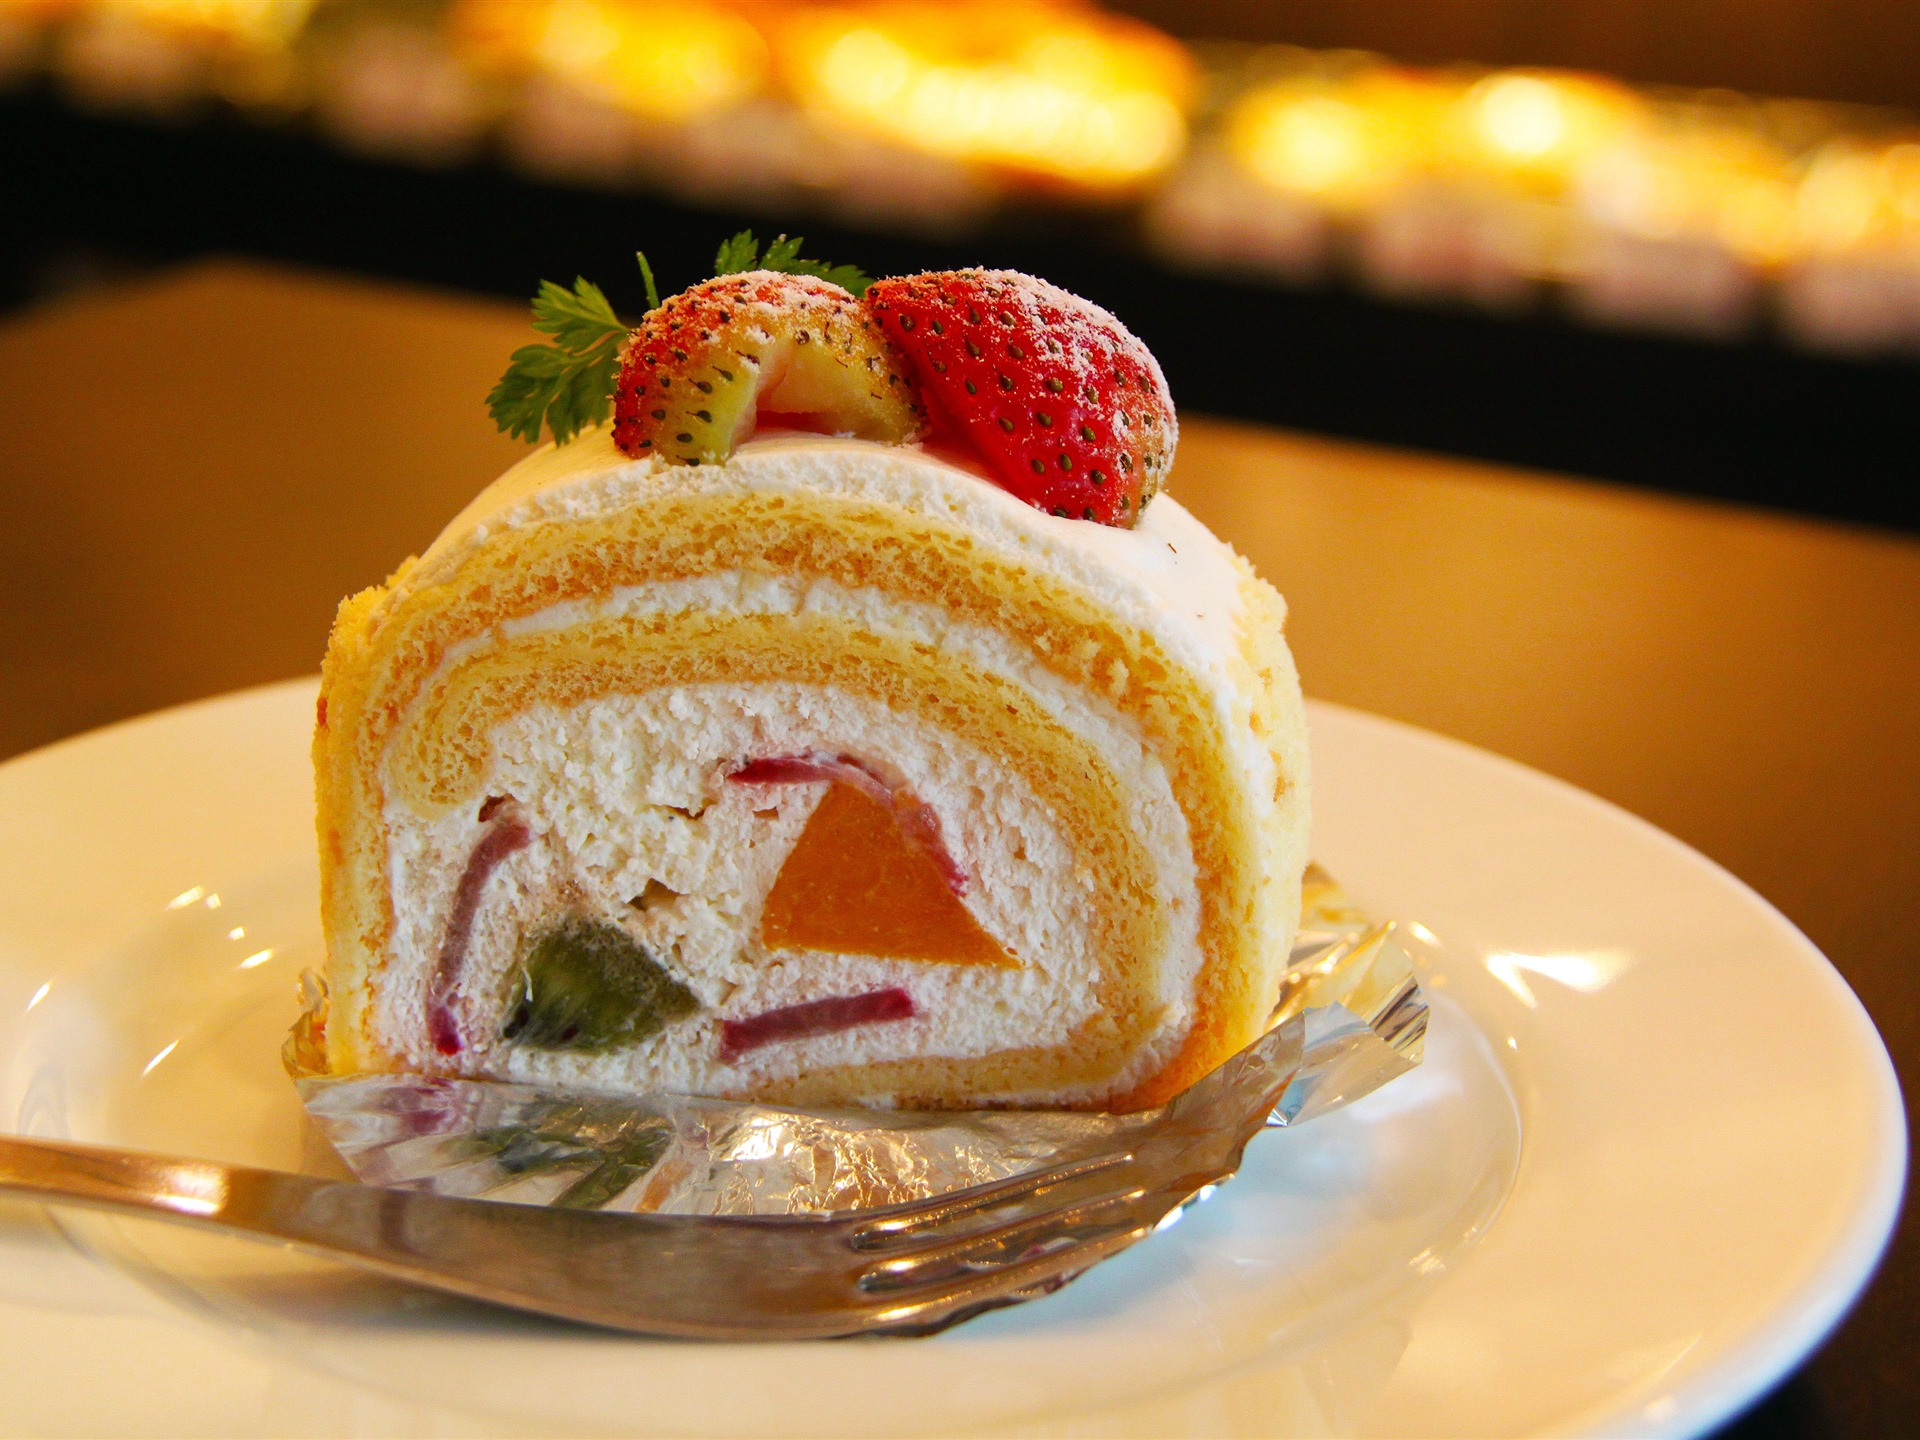 Sweet fruit strawberry cake close-up - 1920x1440 wallpaper download